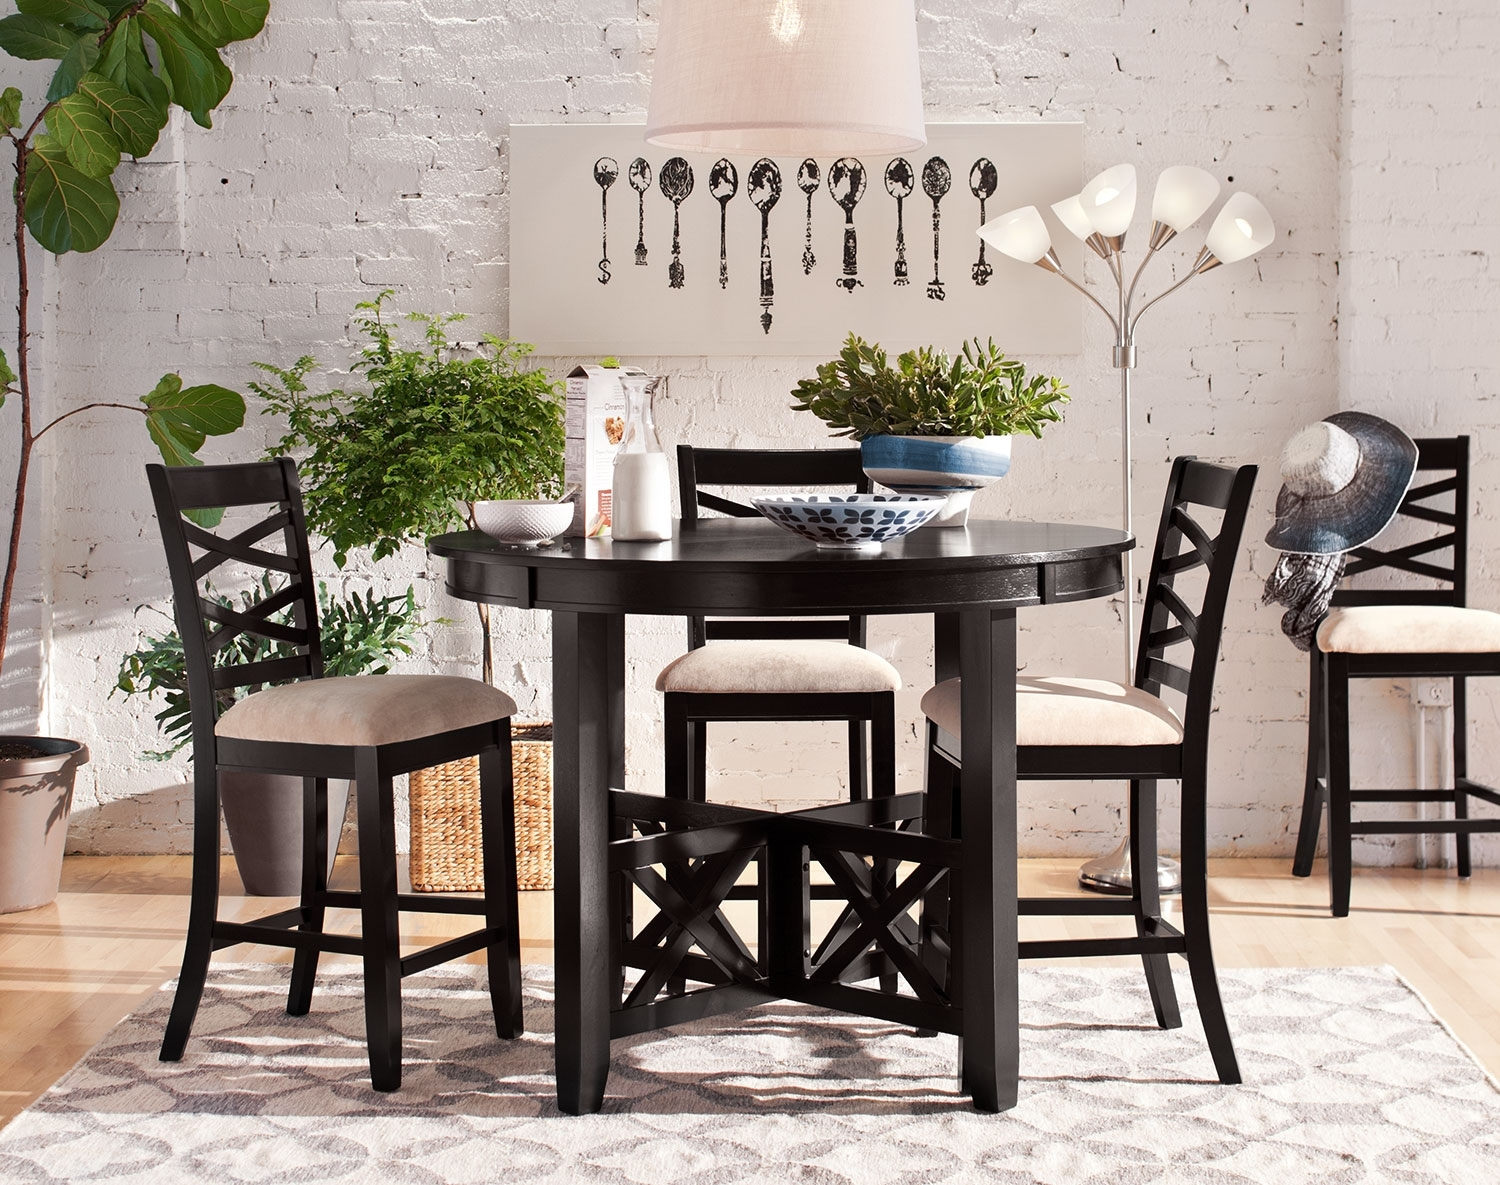 Dining Room Furniture - The Davis Counter-Height Collection - Espresso - 5 Pc. Counter-Height Dinette